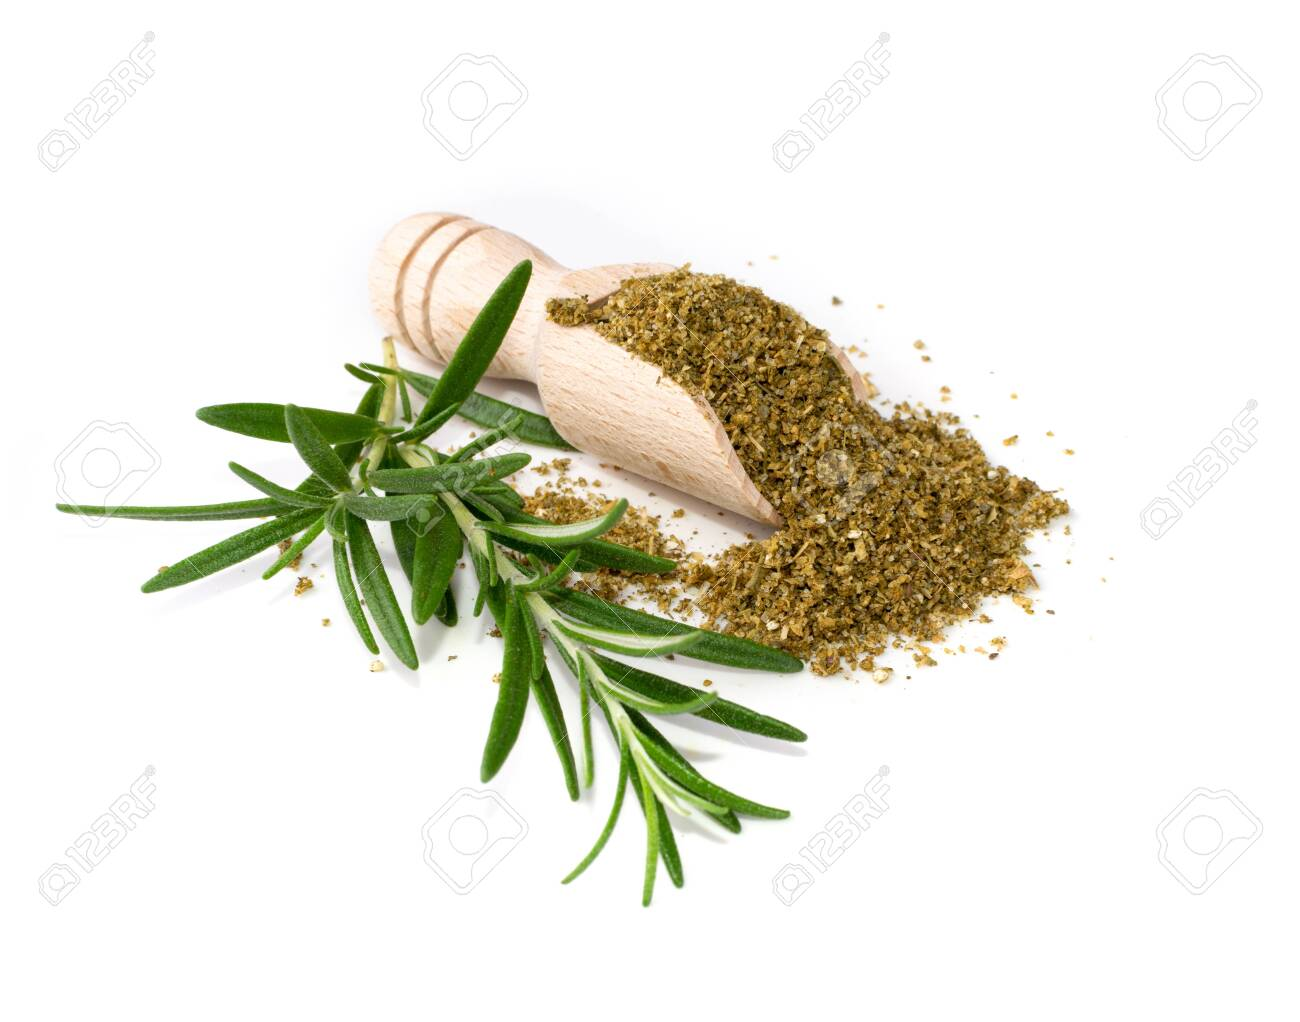 Pile of fish spices mix isolated. Blended seafood spice powders with seasoned salts, grounded saffron, anise, cumin, coriander, basil, fennel, fresh green rosemary, ginger - 139579066